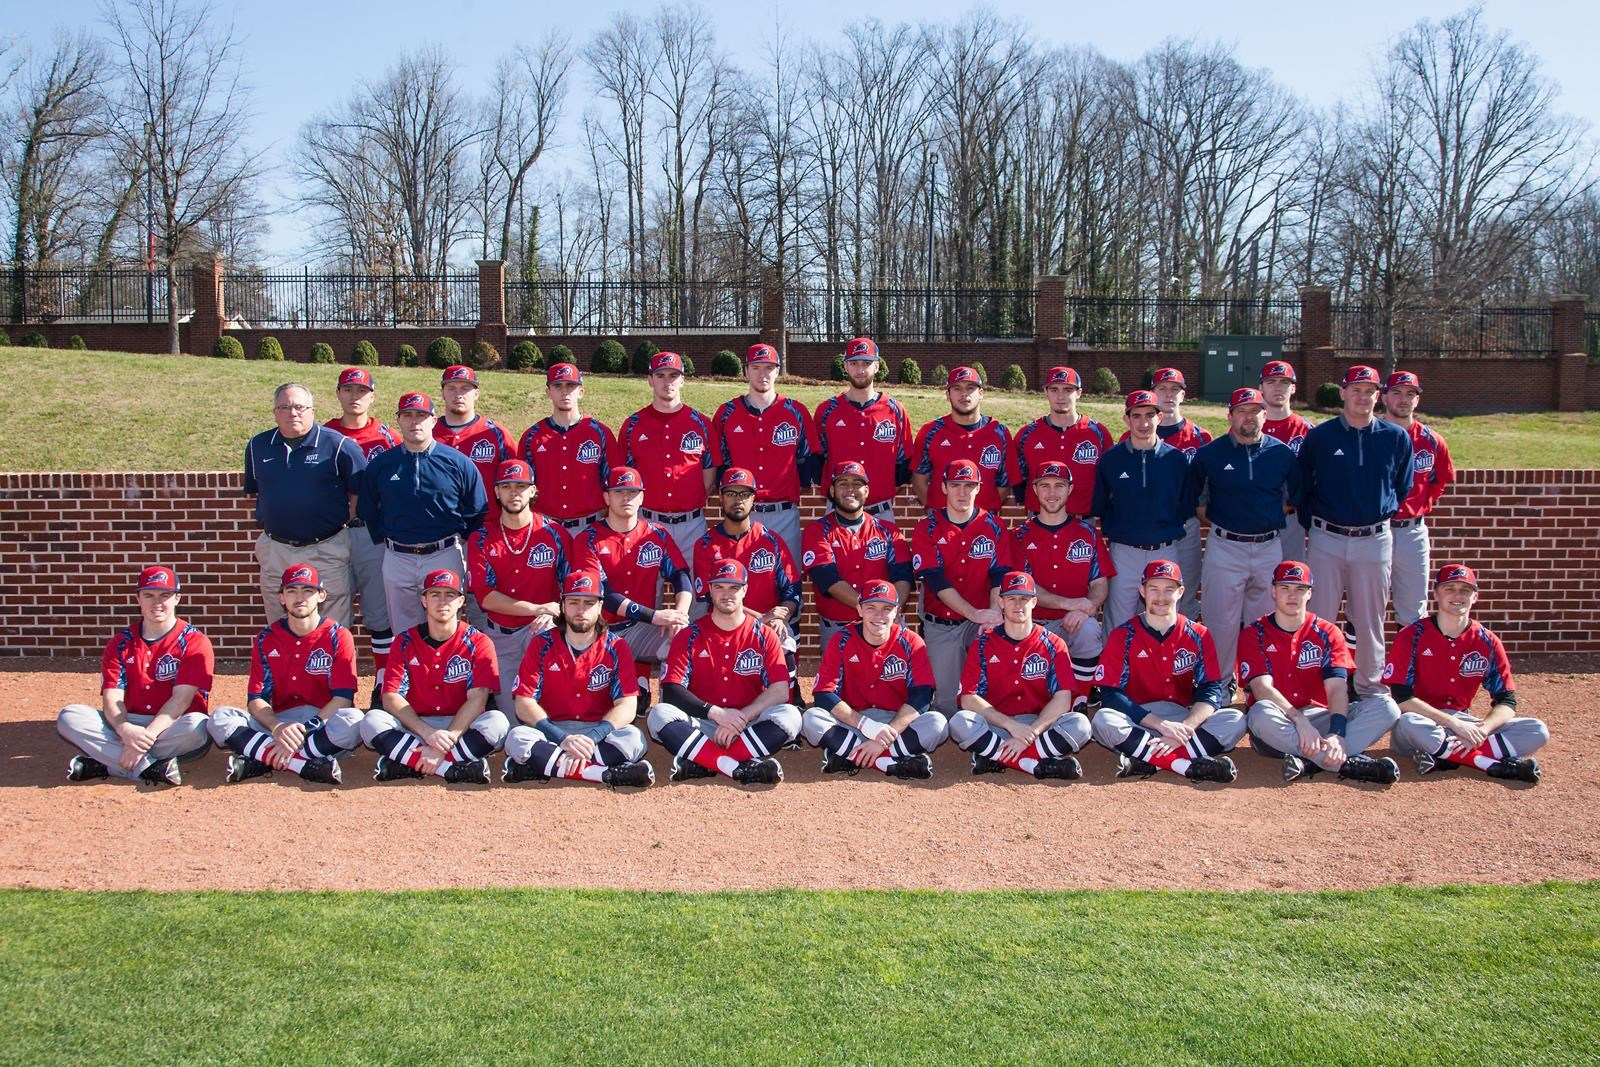 2017 Baseball Roster New Jersey Institute Of Technology Athletics